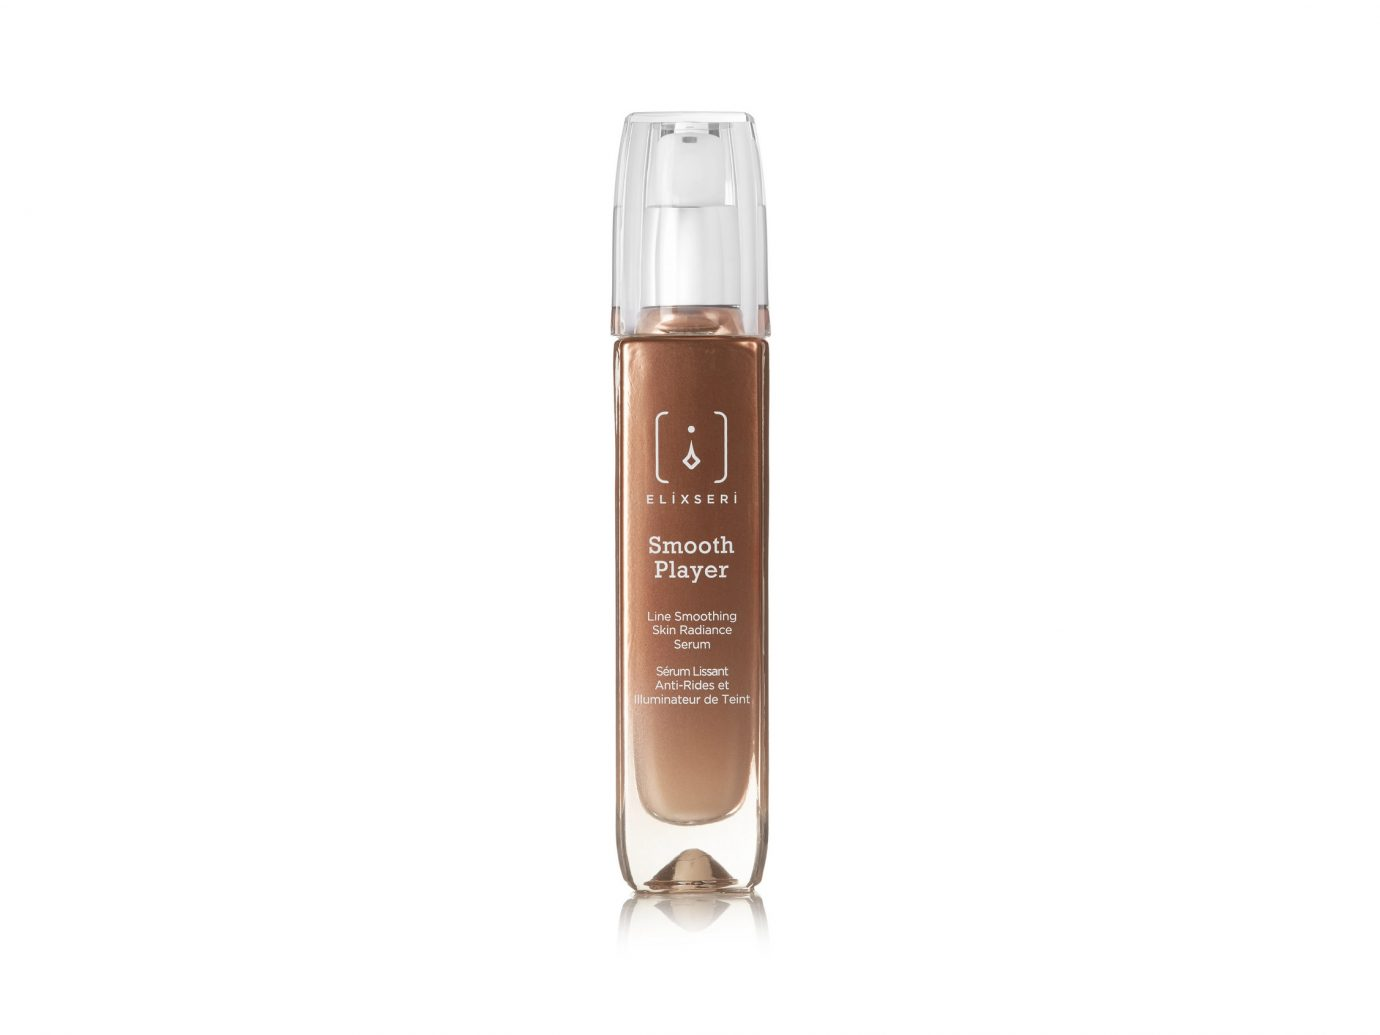 Elixseri Smooth Player Line Smoothing Skin Radiance Serum